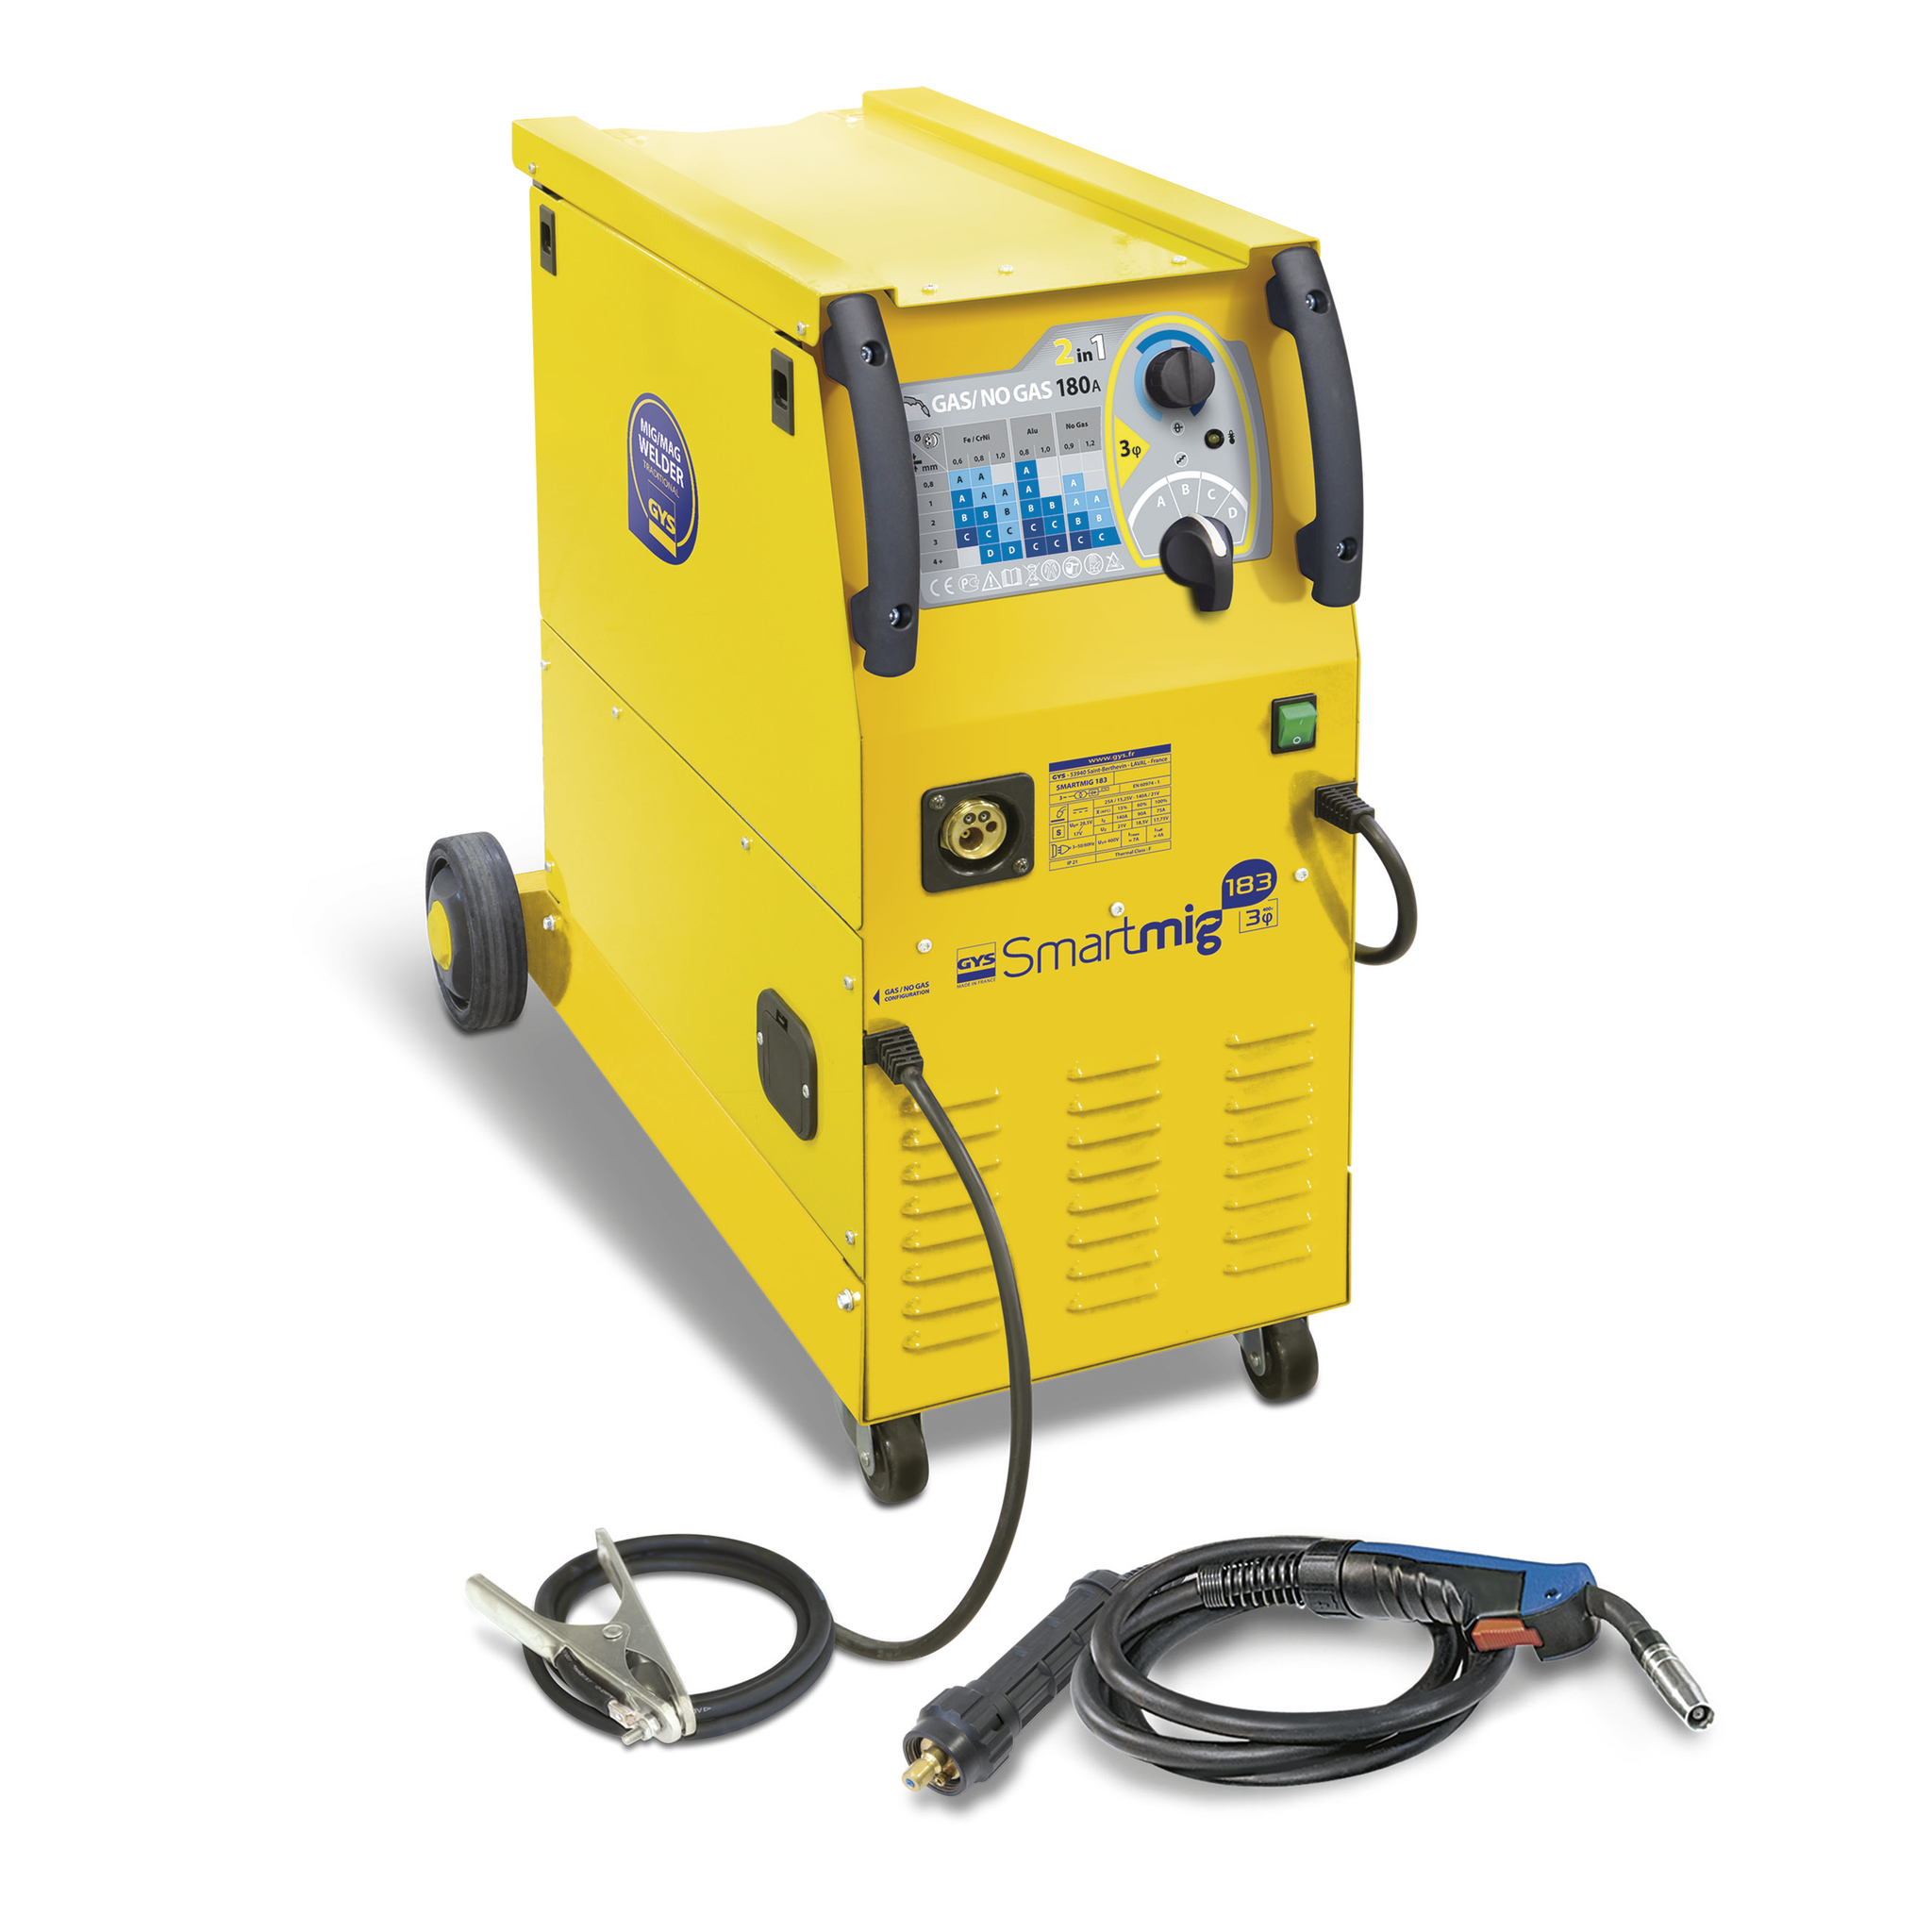 Mig Welder Gys Smartmig 183 As Easy As 1 2 3